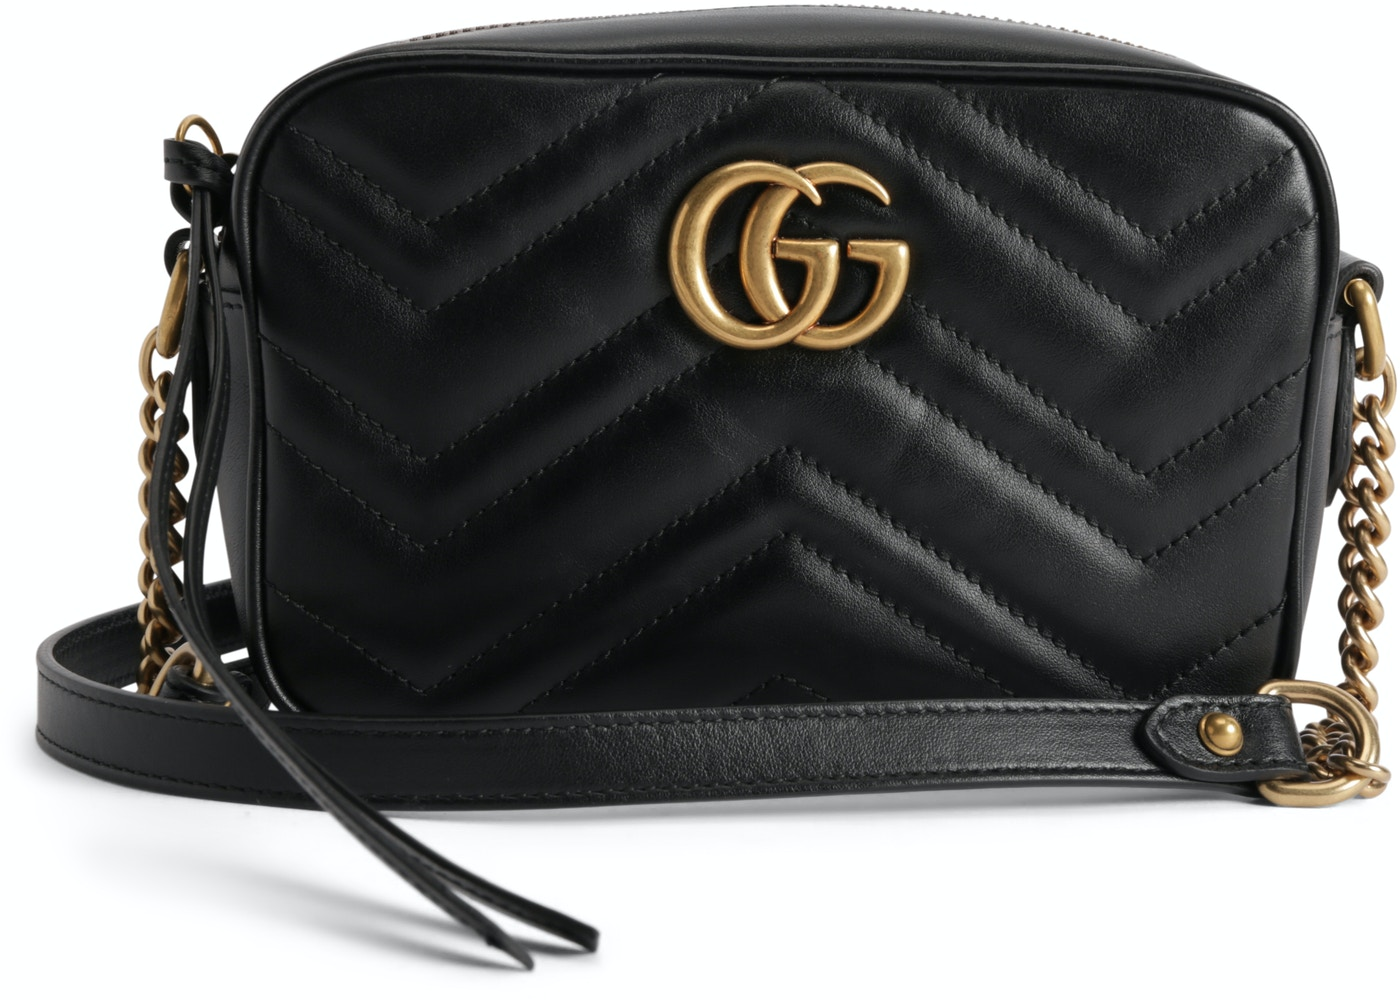 42152b702d87 Gucci Marmont Camera Bag Price Europe | Stanford Center for ...